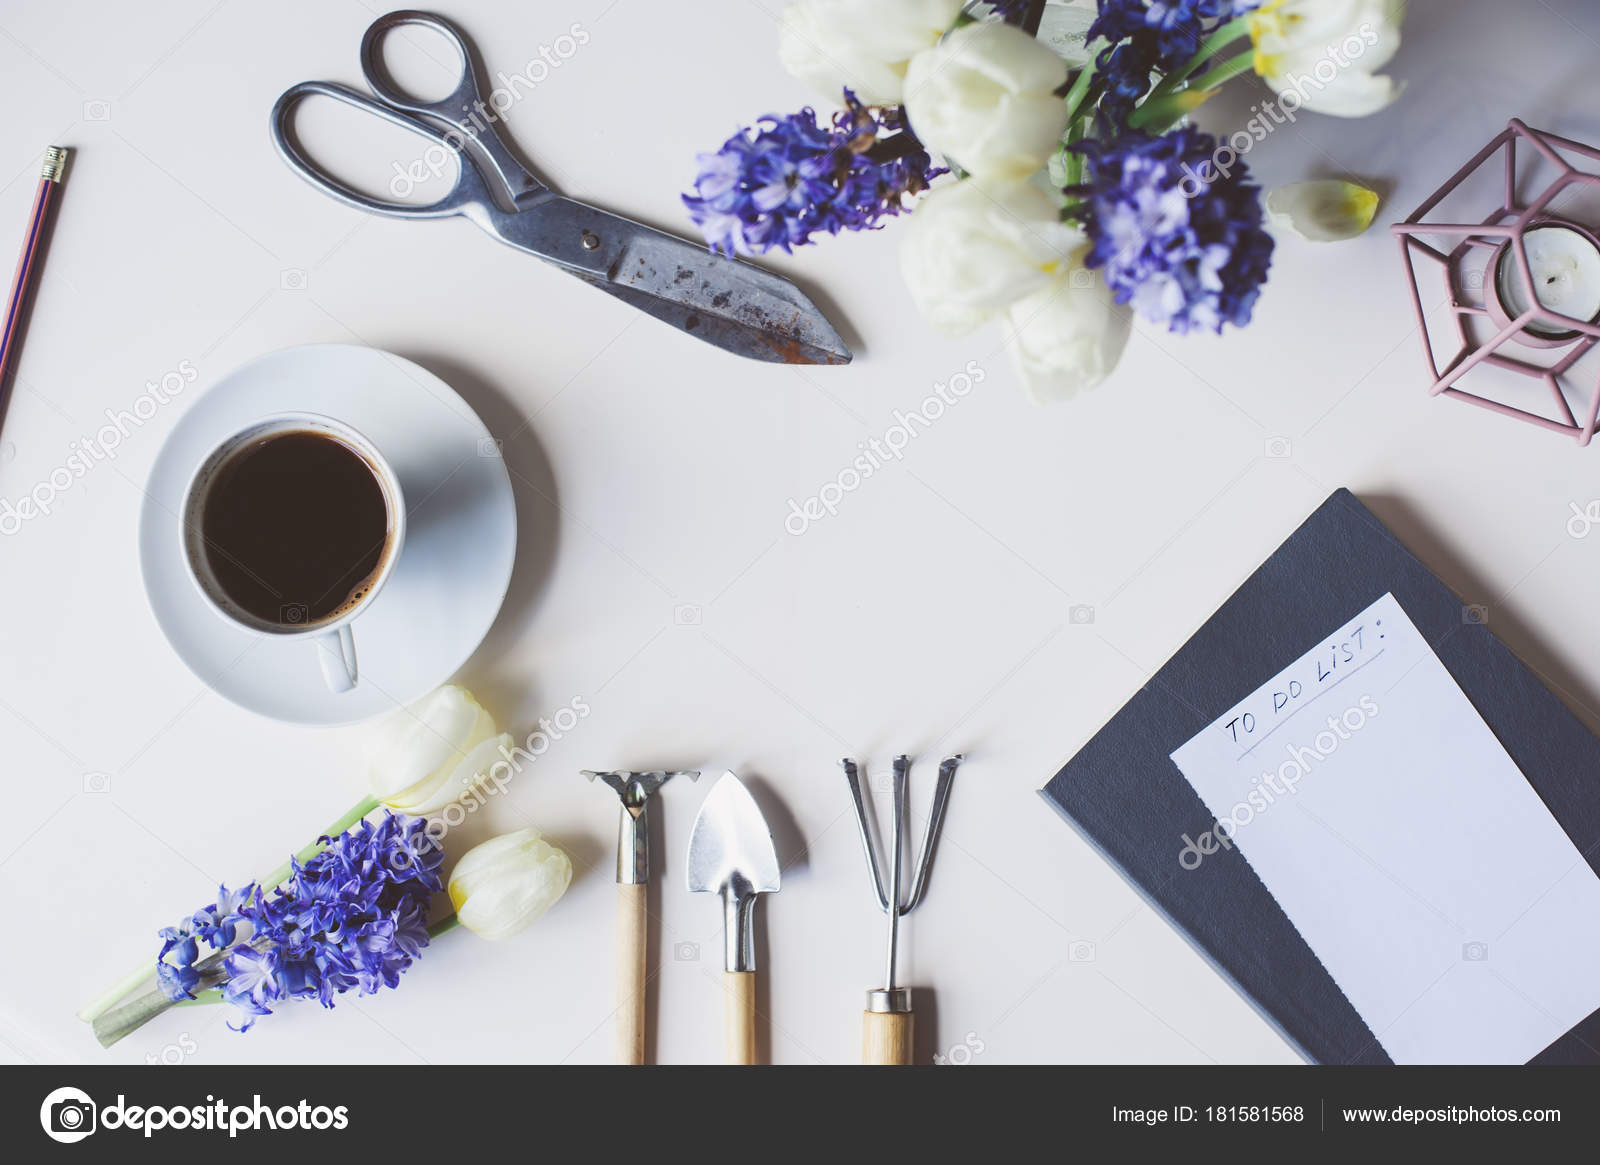 Spring gardener plan list table empty space white background flat spring gardener plan or to do list on table with empty space on white background flat lay top view seasonal composition with flowers garden tools mightylinksfo